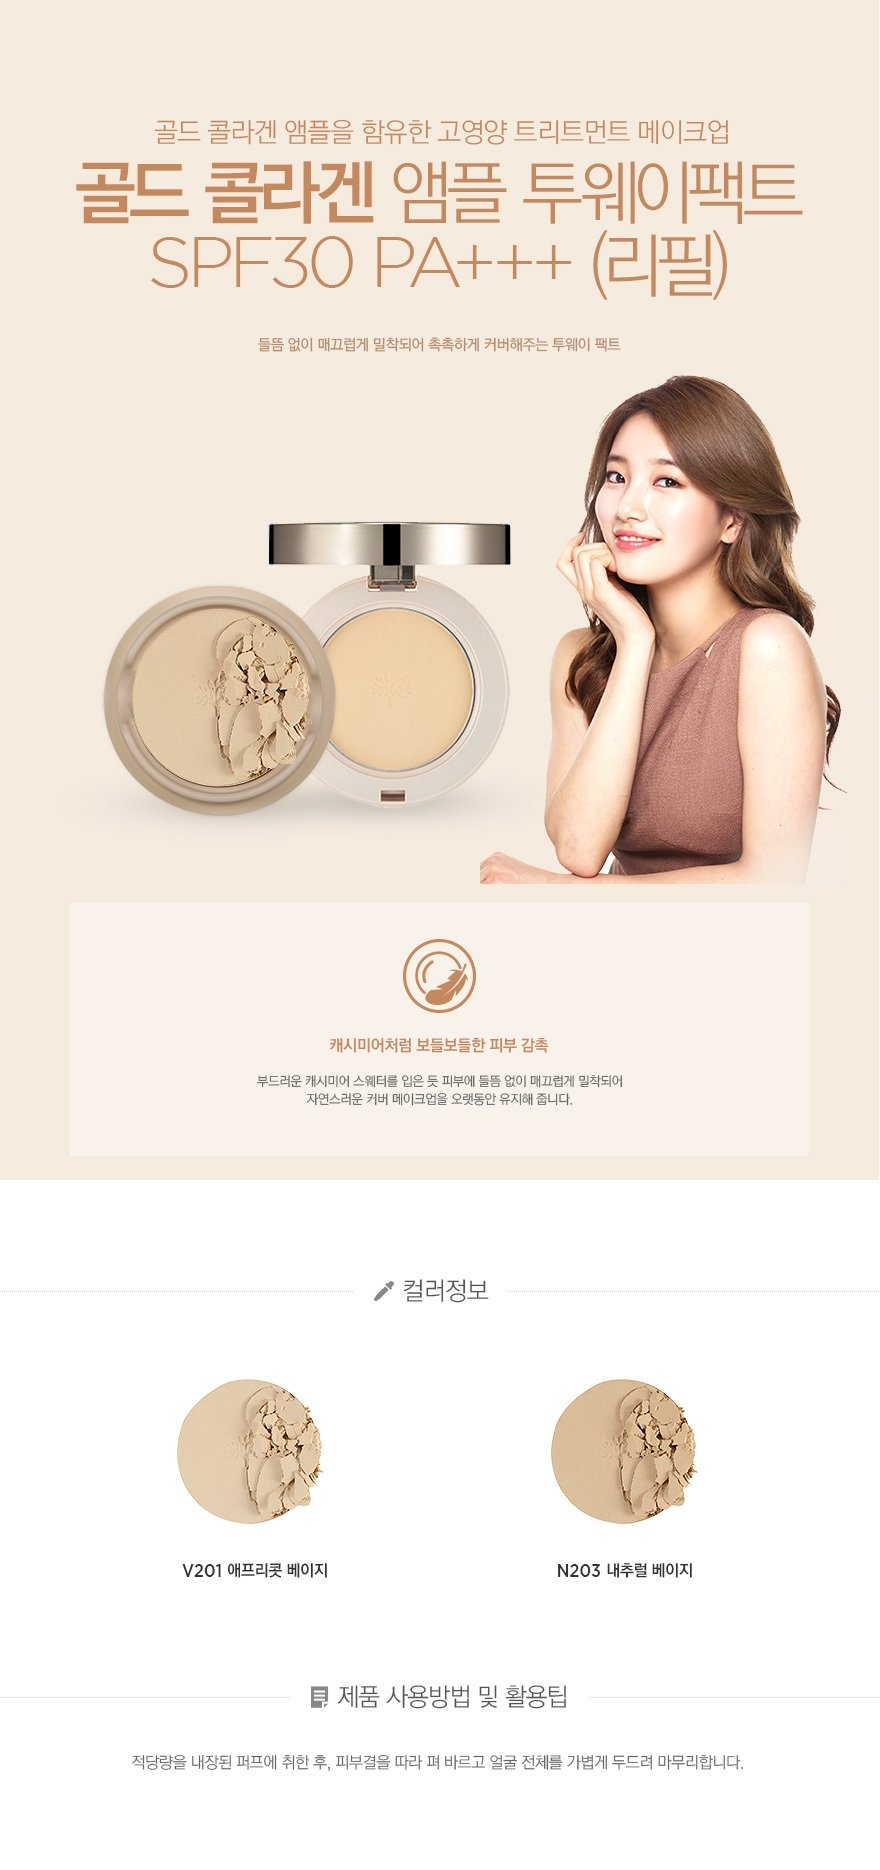 The Face Shop Gold Collagen Ampoule Two Way Pact SPF30 PA+++ [V201 Apricot Beige]